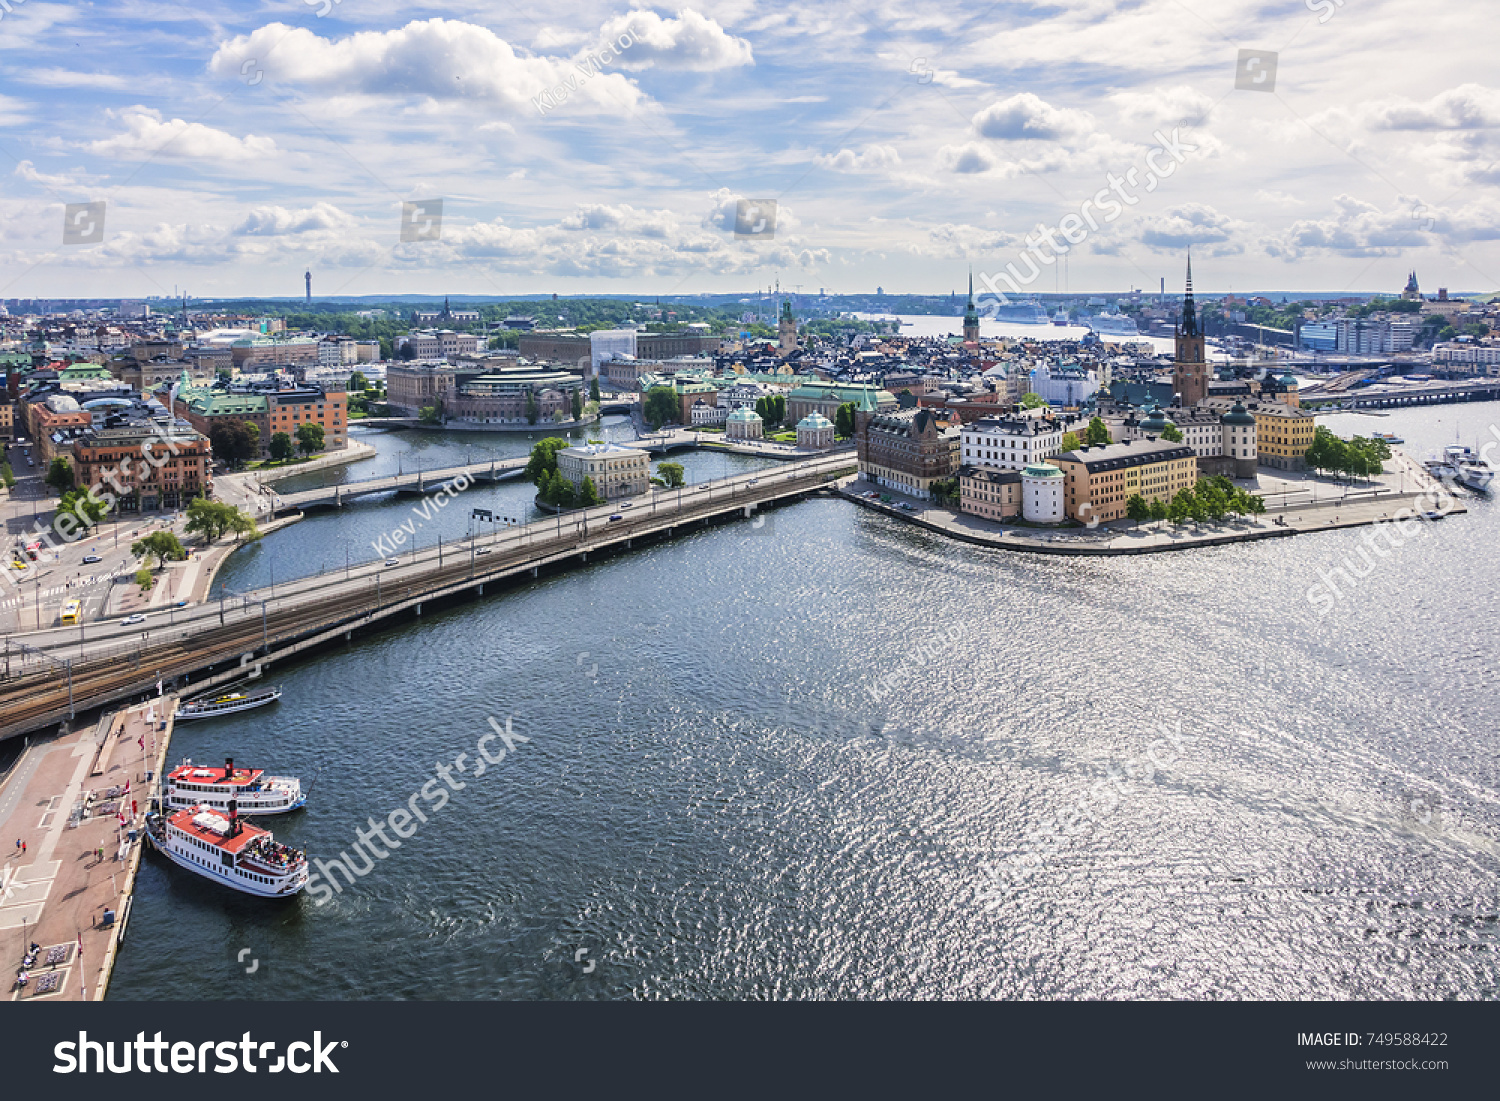 Beautiful aerial view of Stockholm city. Stockholm, Sweden. #749588422